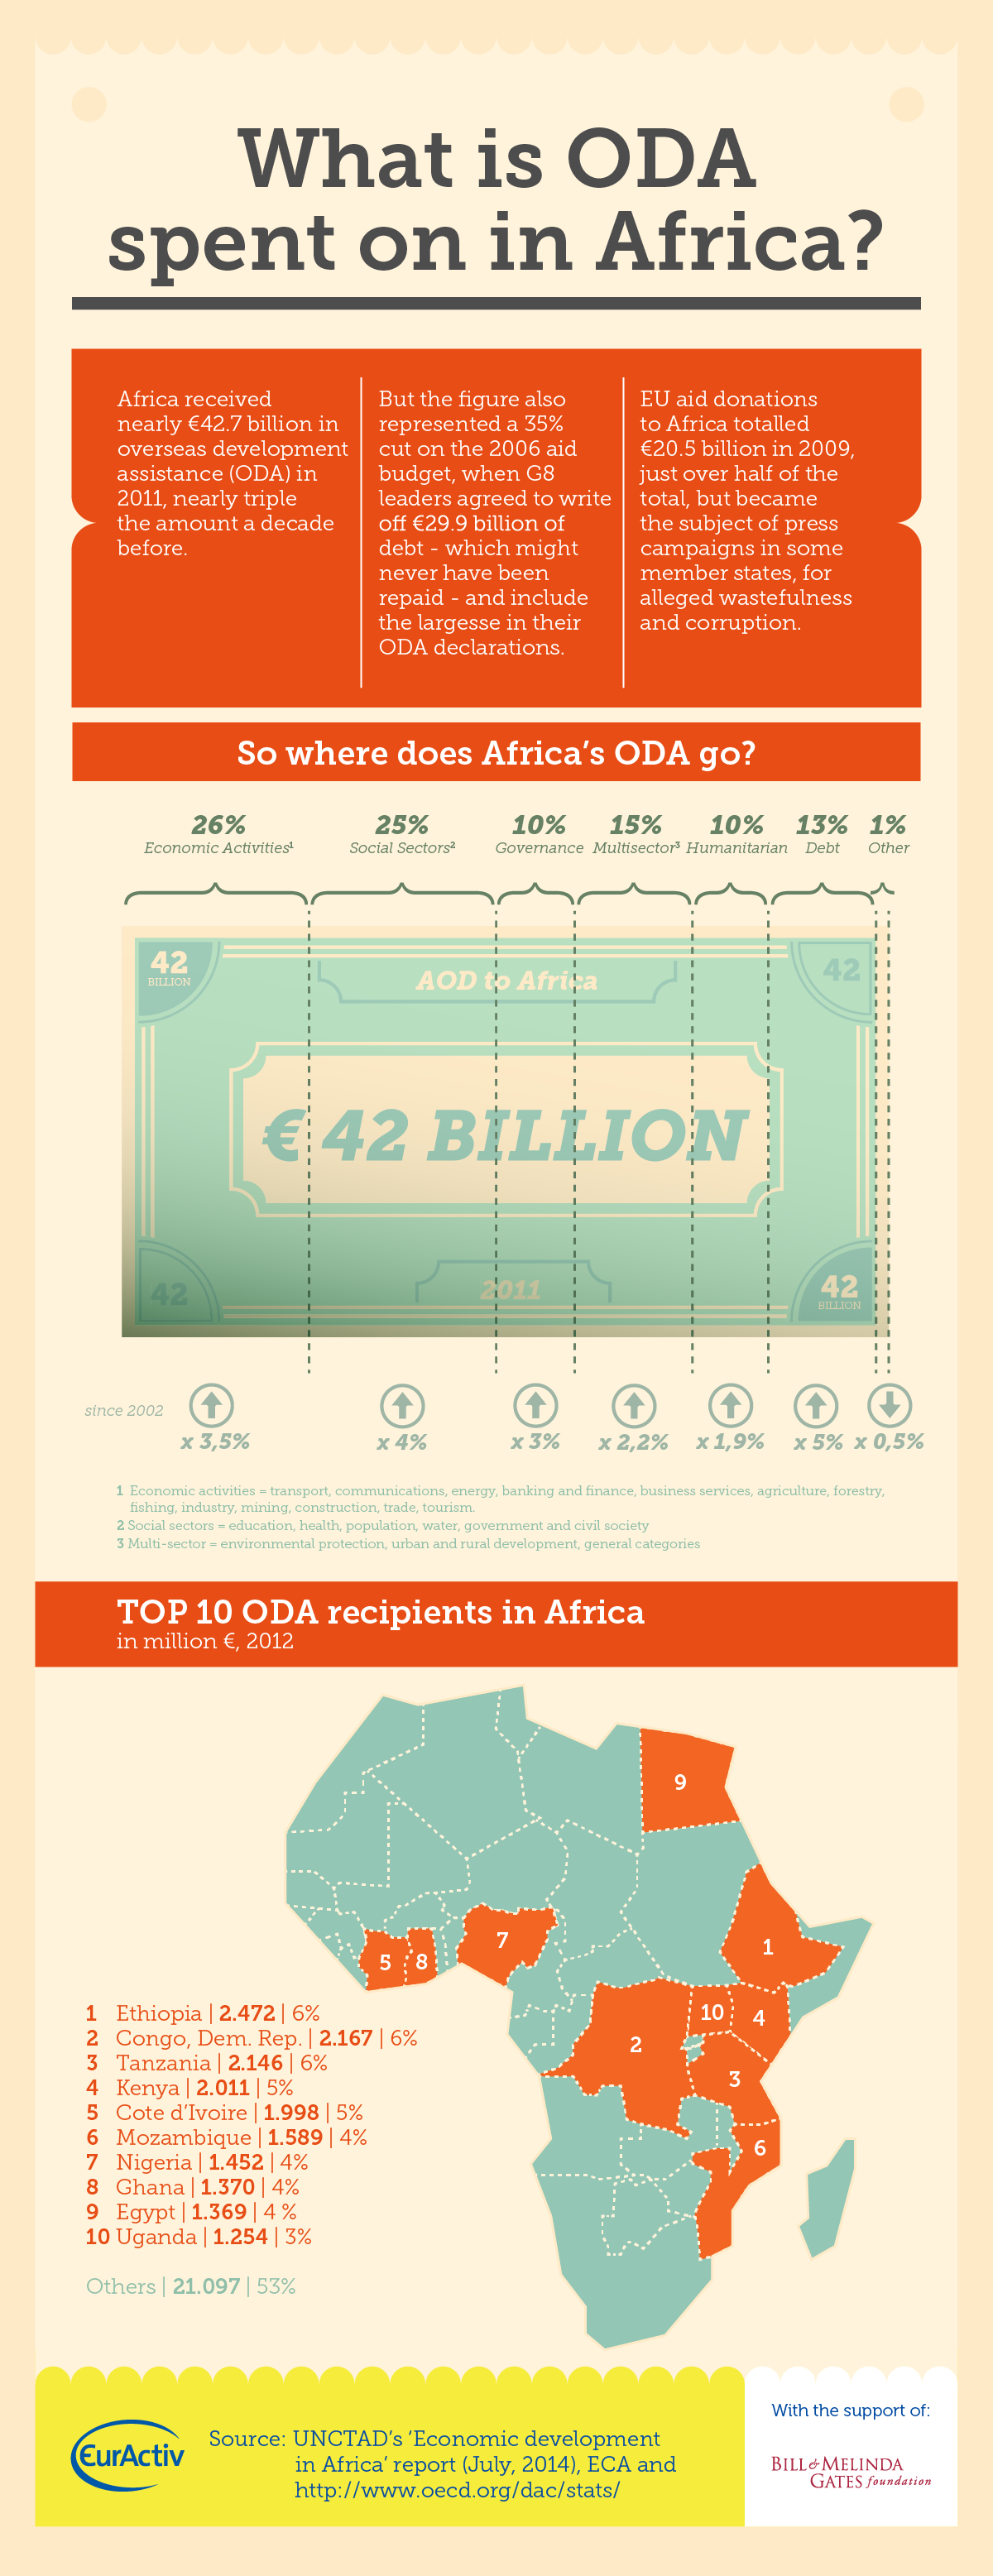 What is ODA spent on in Africa?